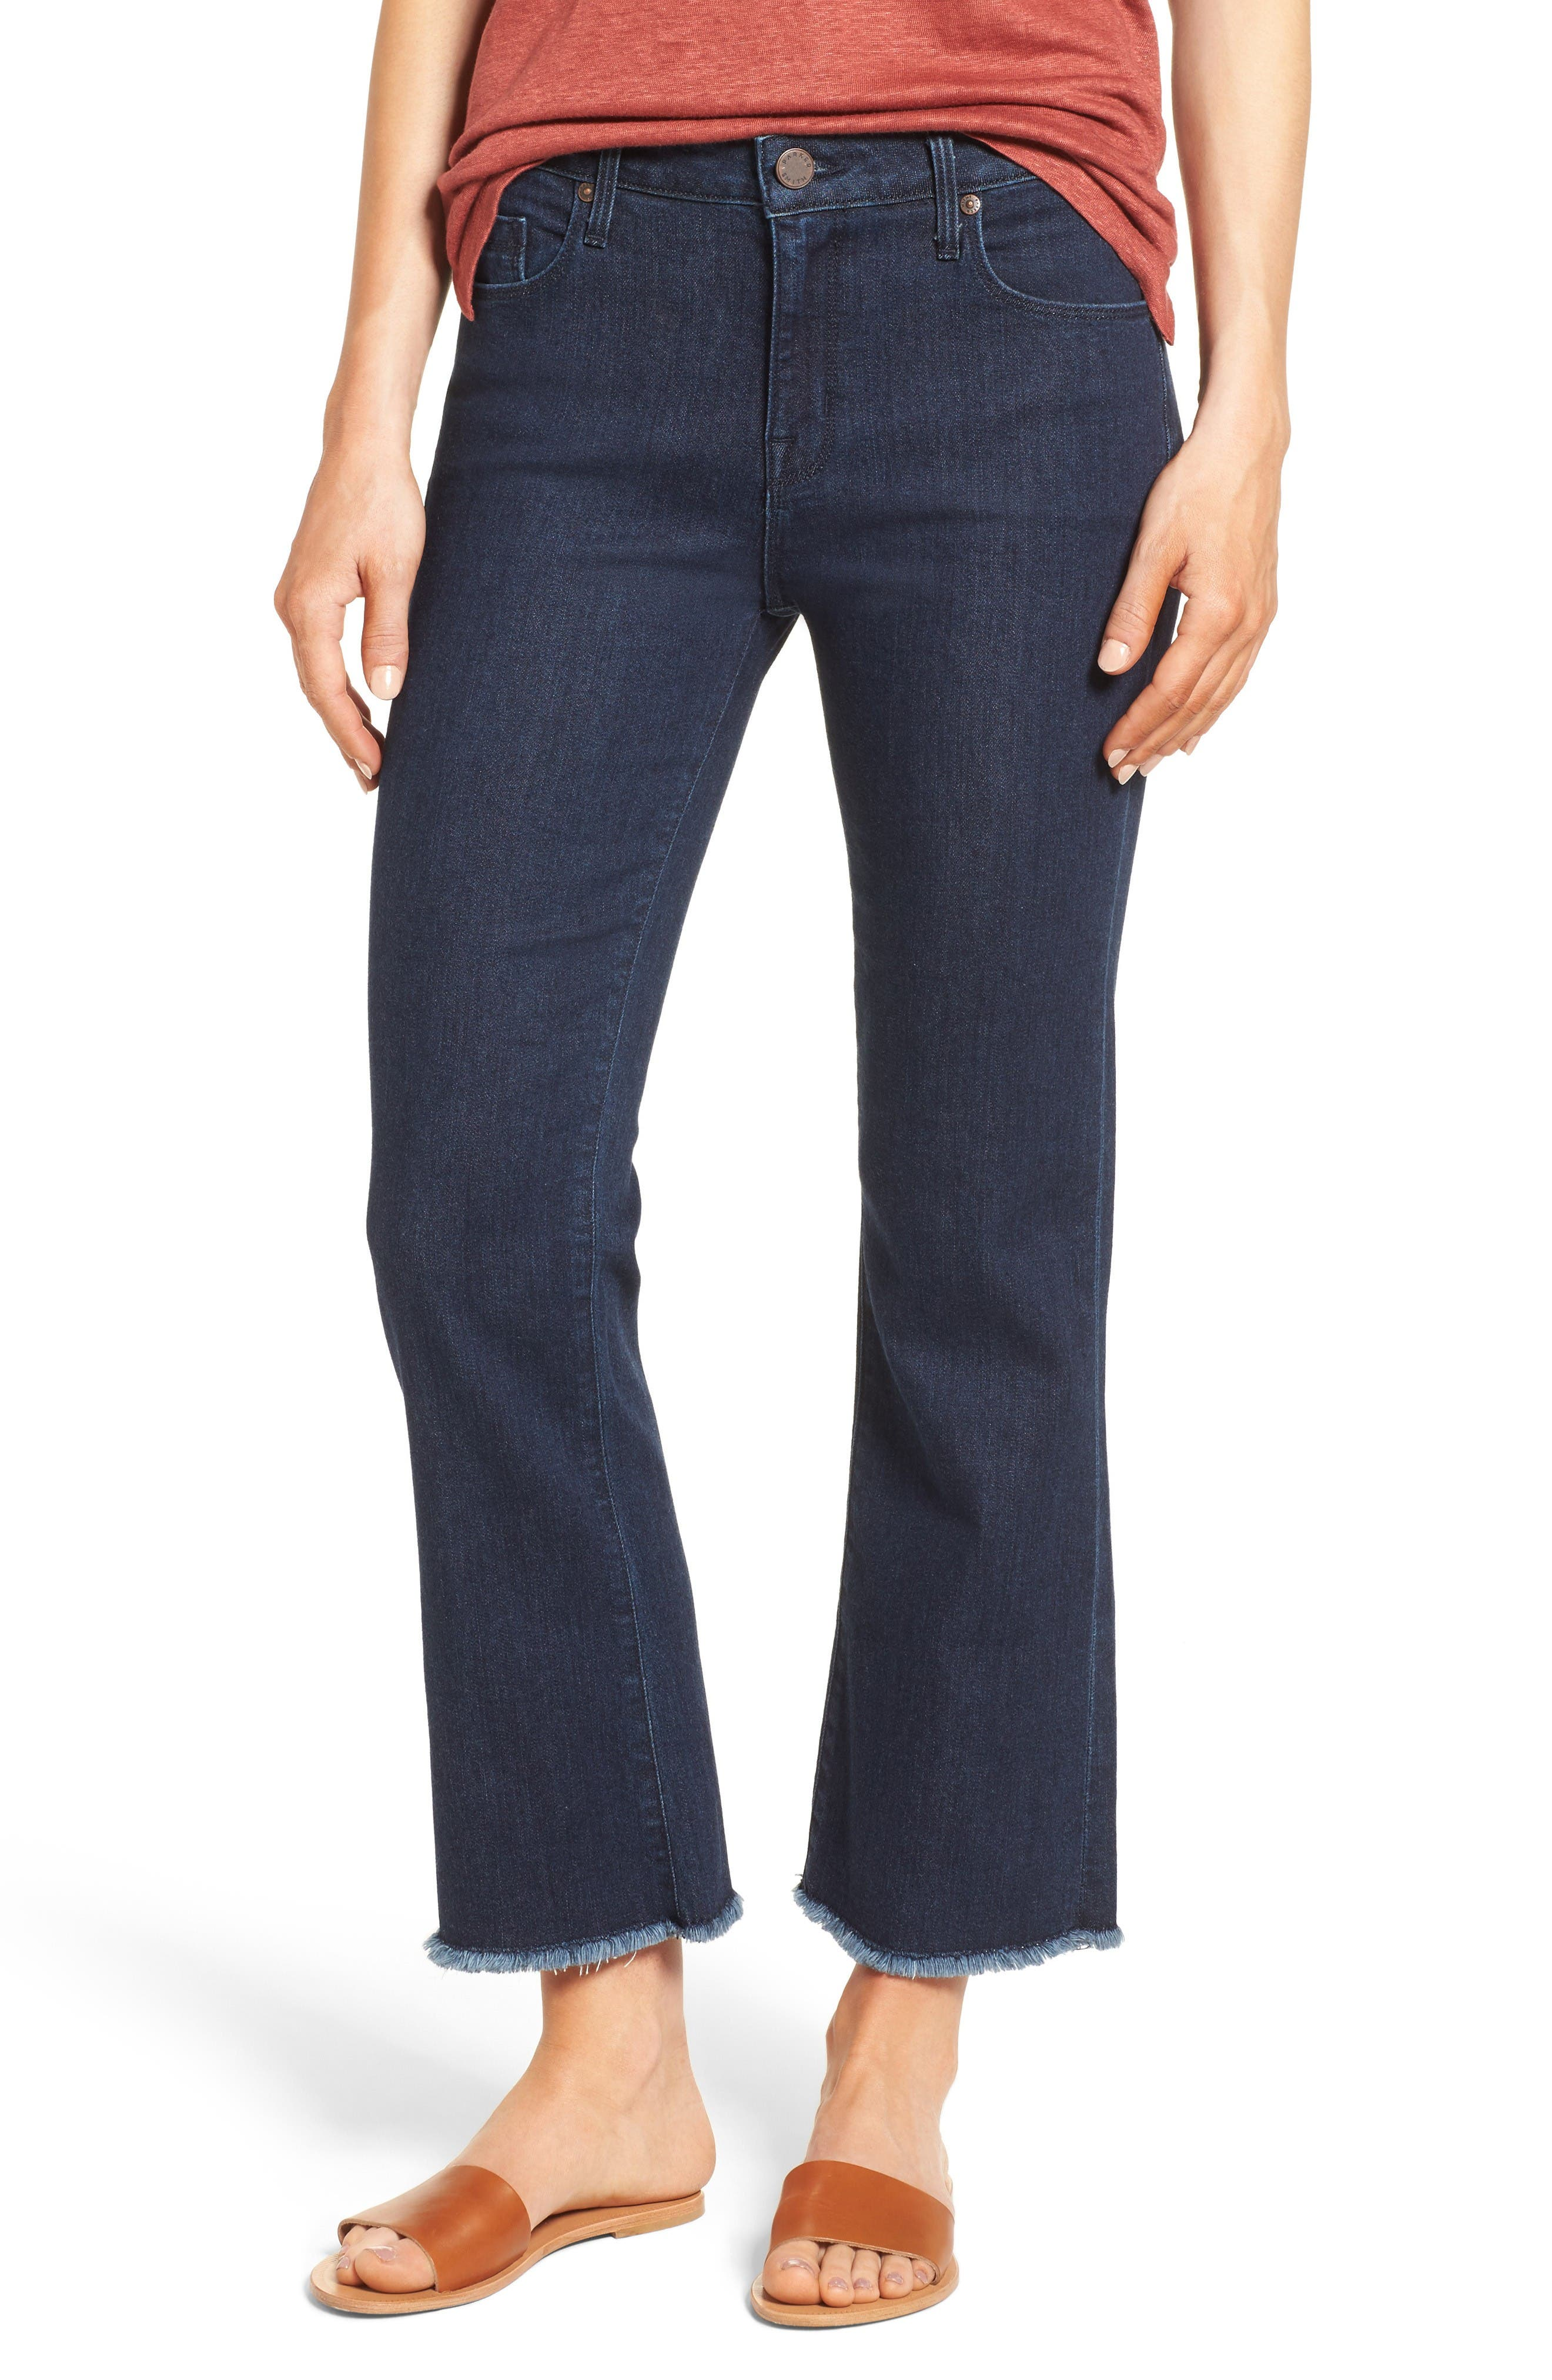 Main Image - PARKER SMITH Brynna Crop Flare Jeans (Baltic)